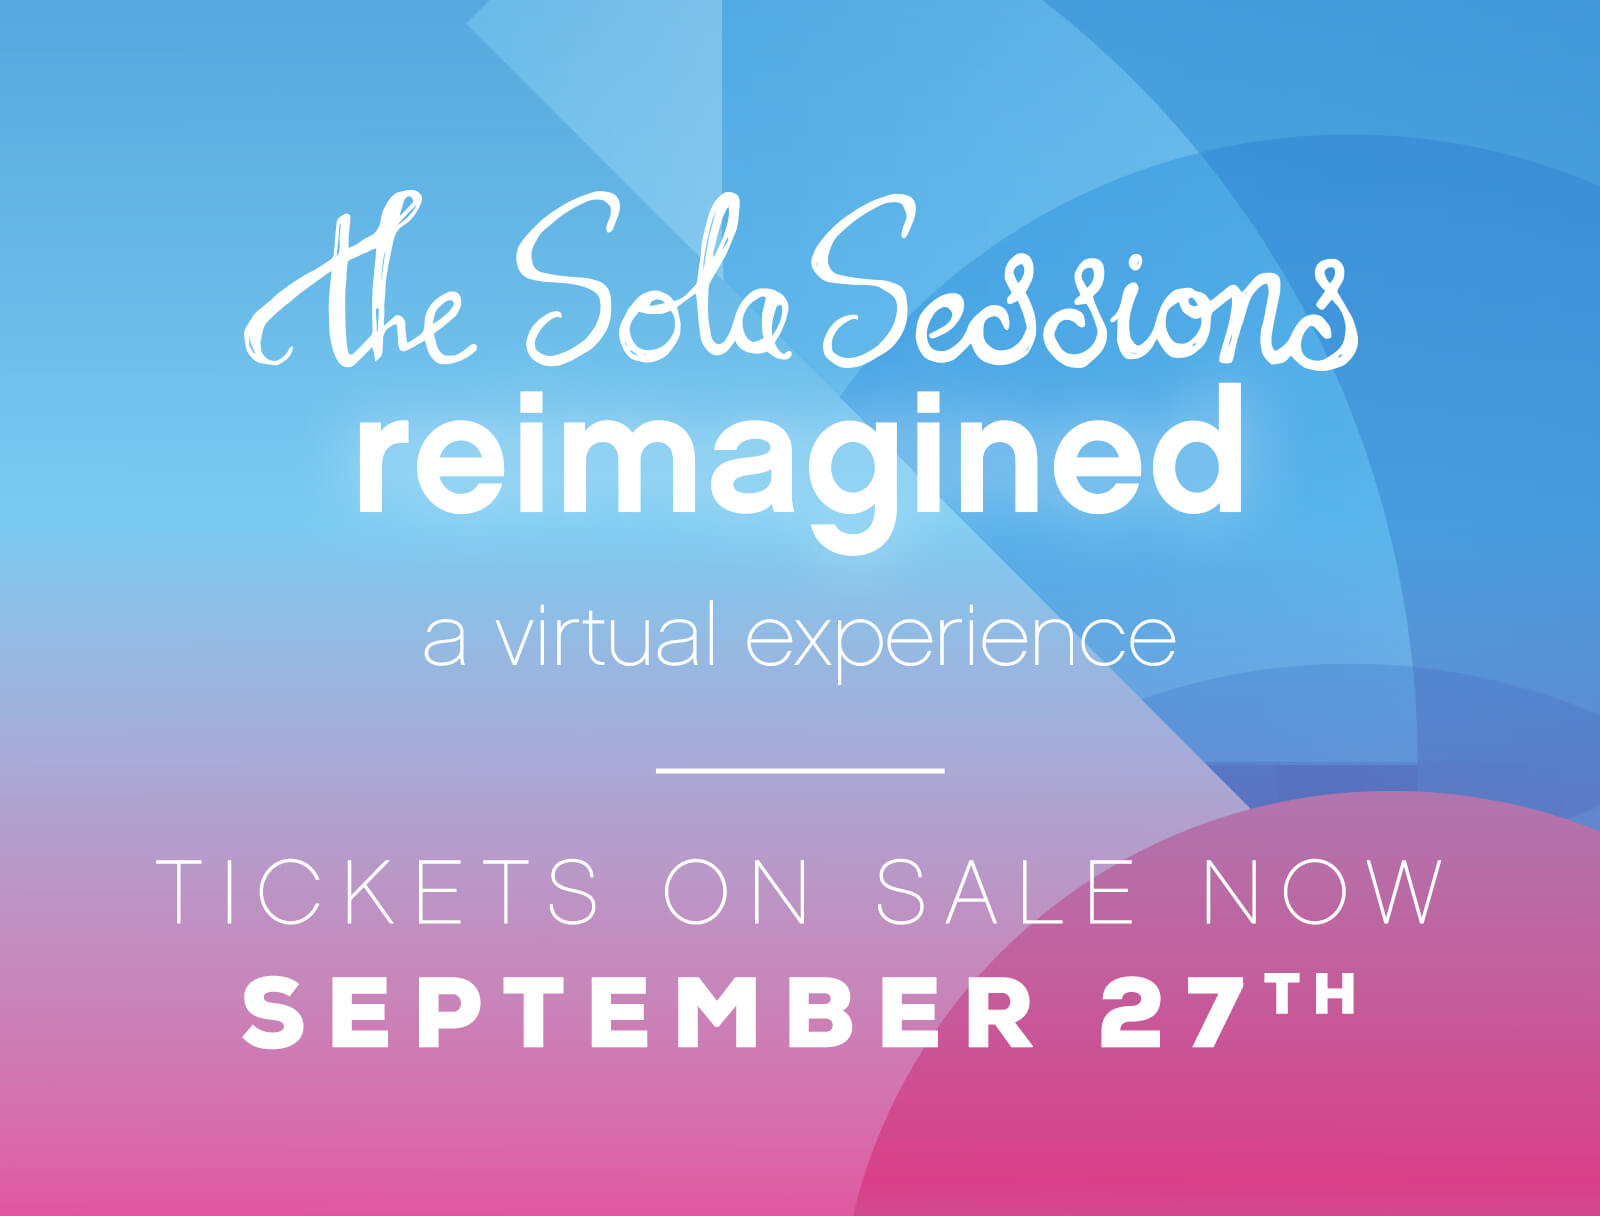 The Sola Sessions reimagined a virtual experience. Save the date. September 27th